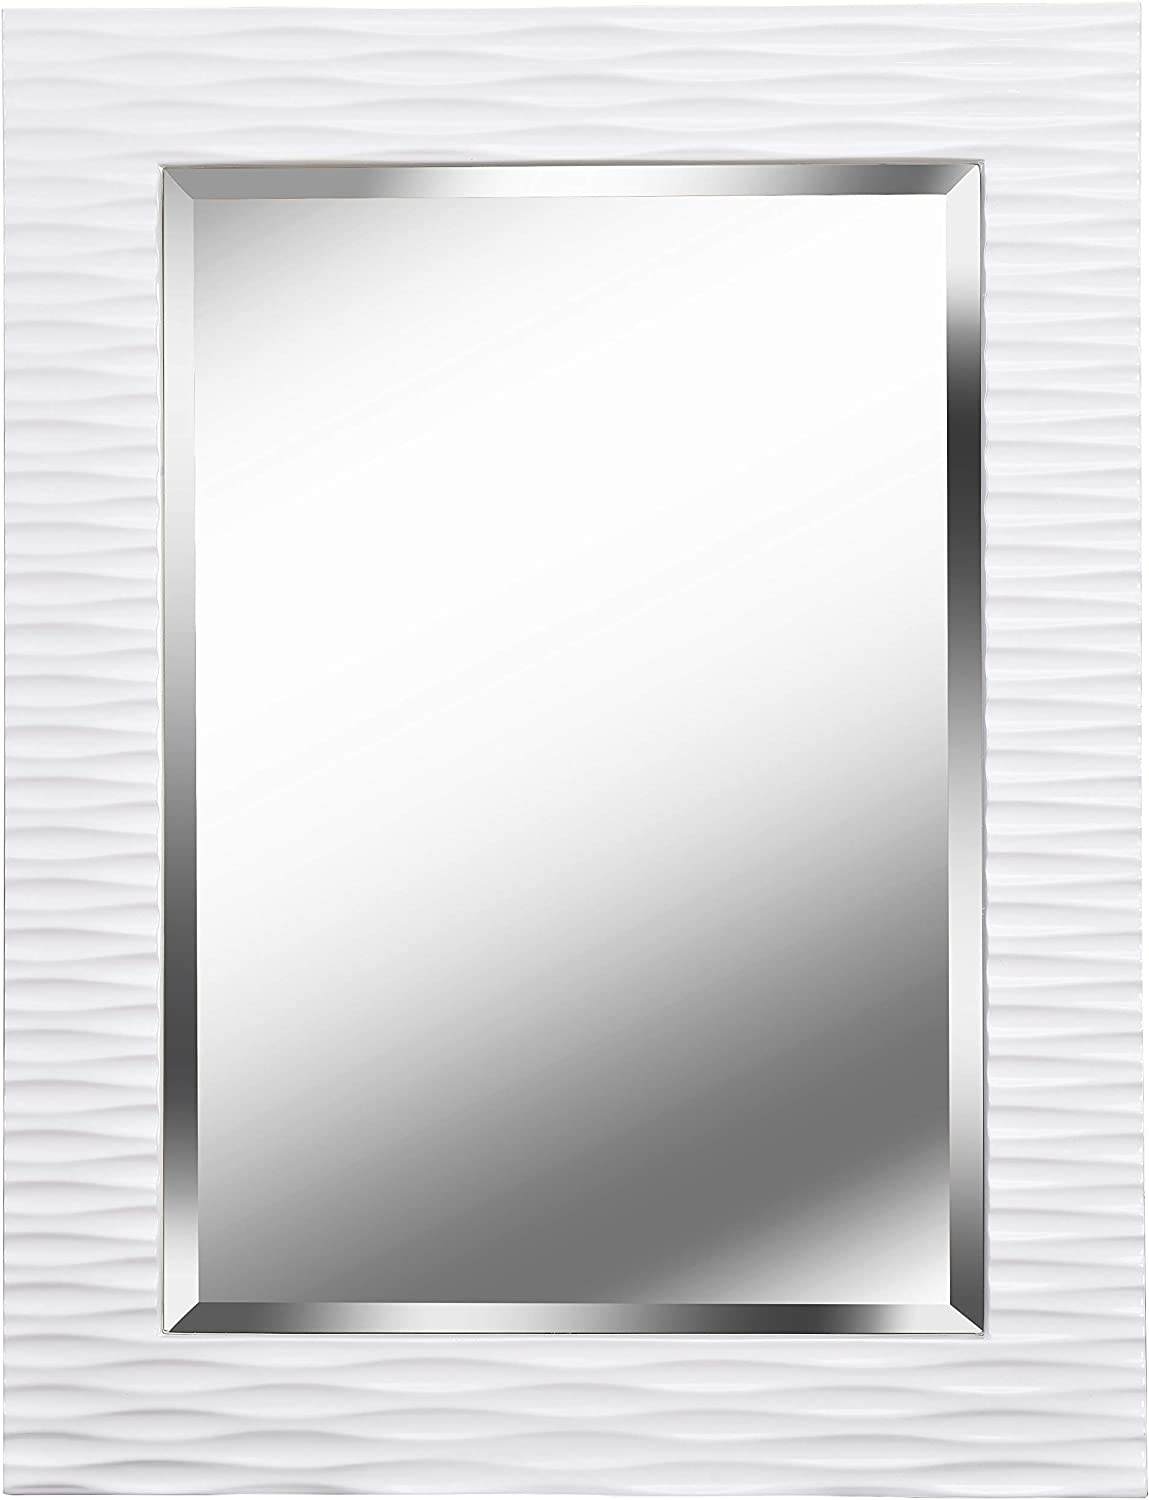 Kenroy Home Kenroy 60024 Transitional Wall Mirror From Kendrick Collection In White Finish 38 5 Inch Height 1 5 Inch Width Home Improvement Amazon Com